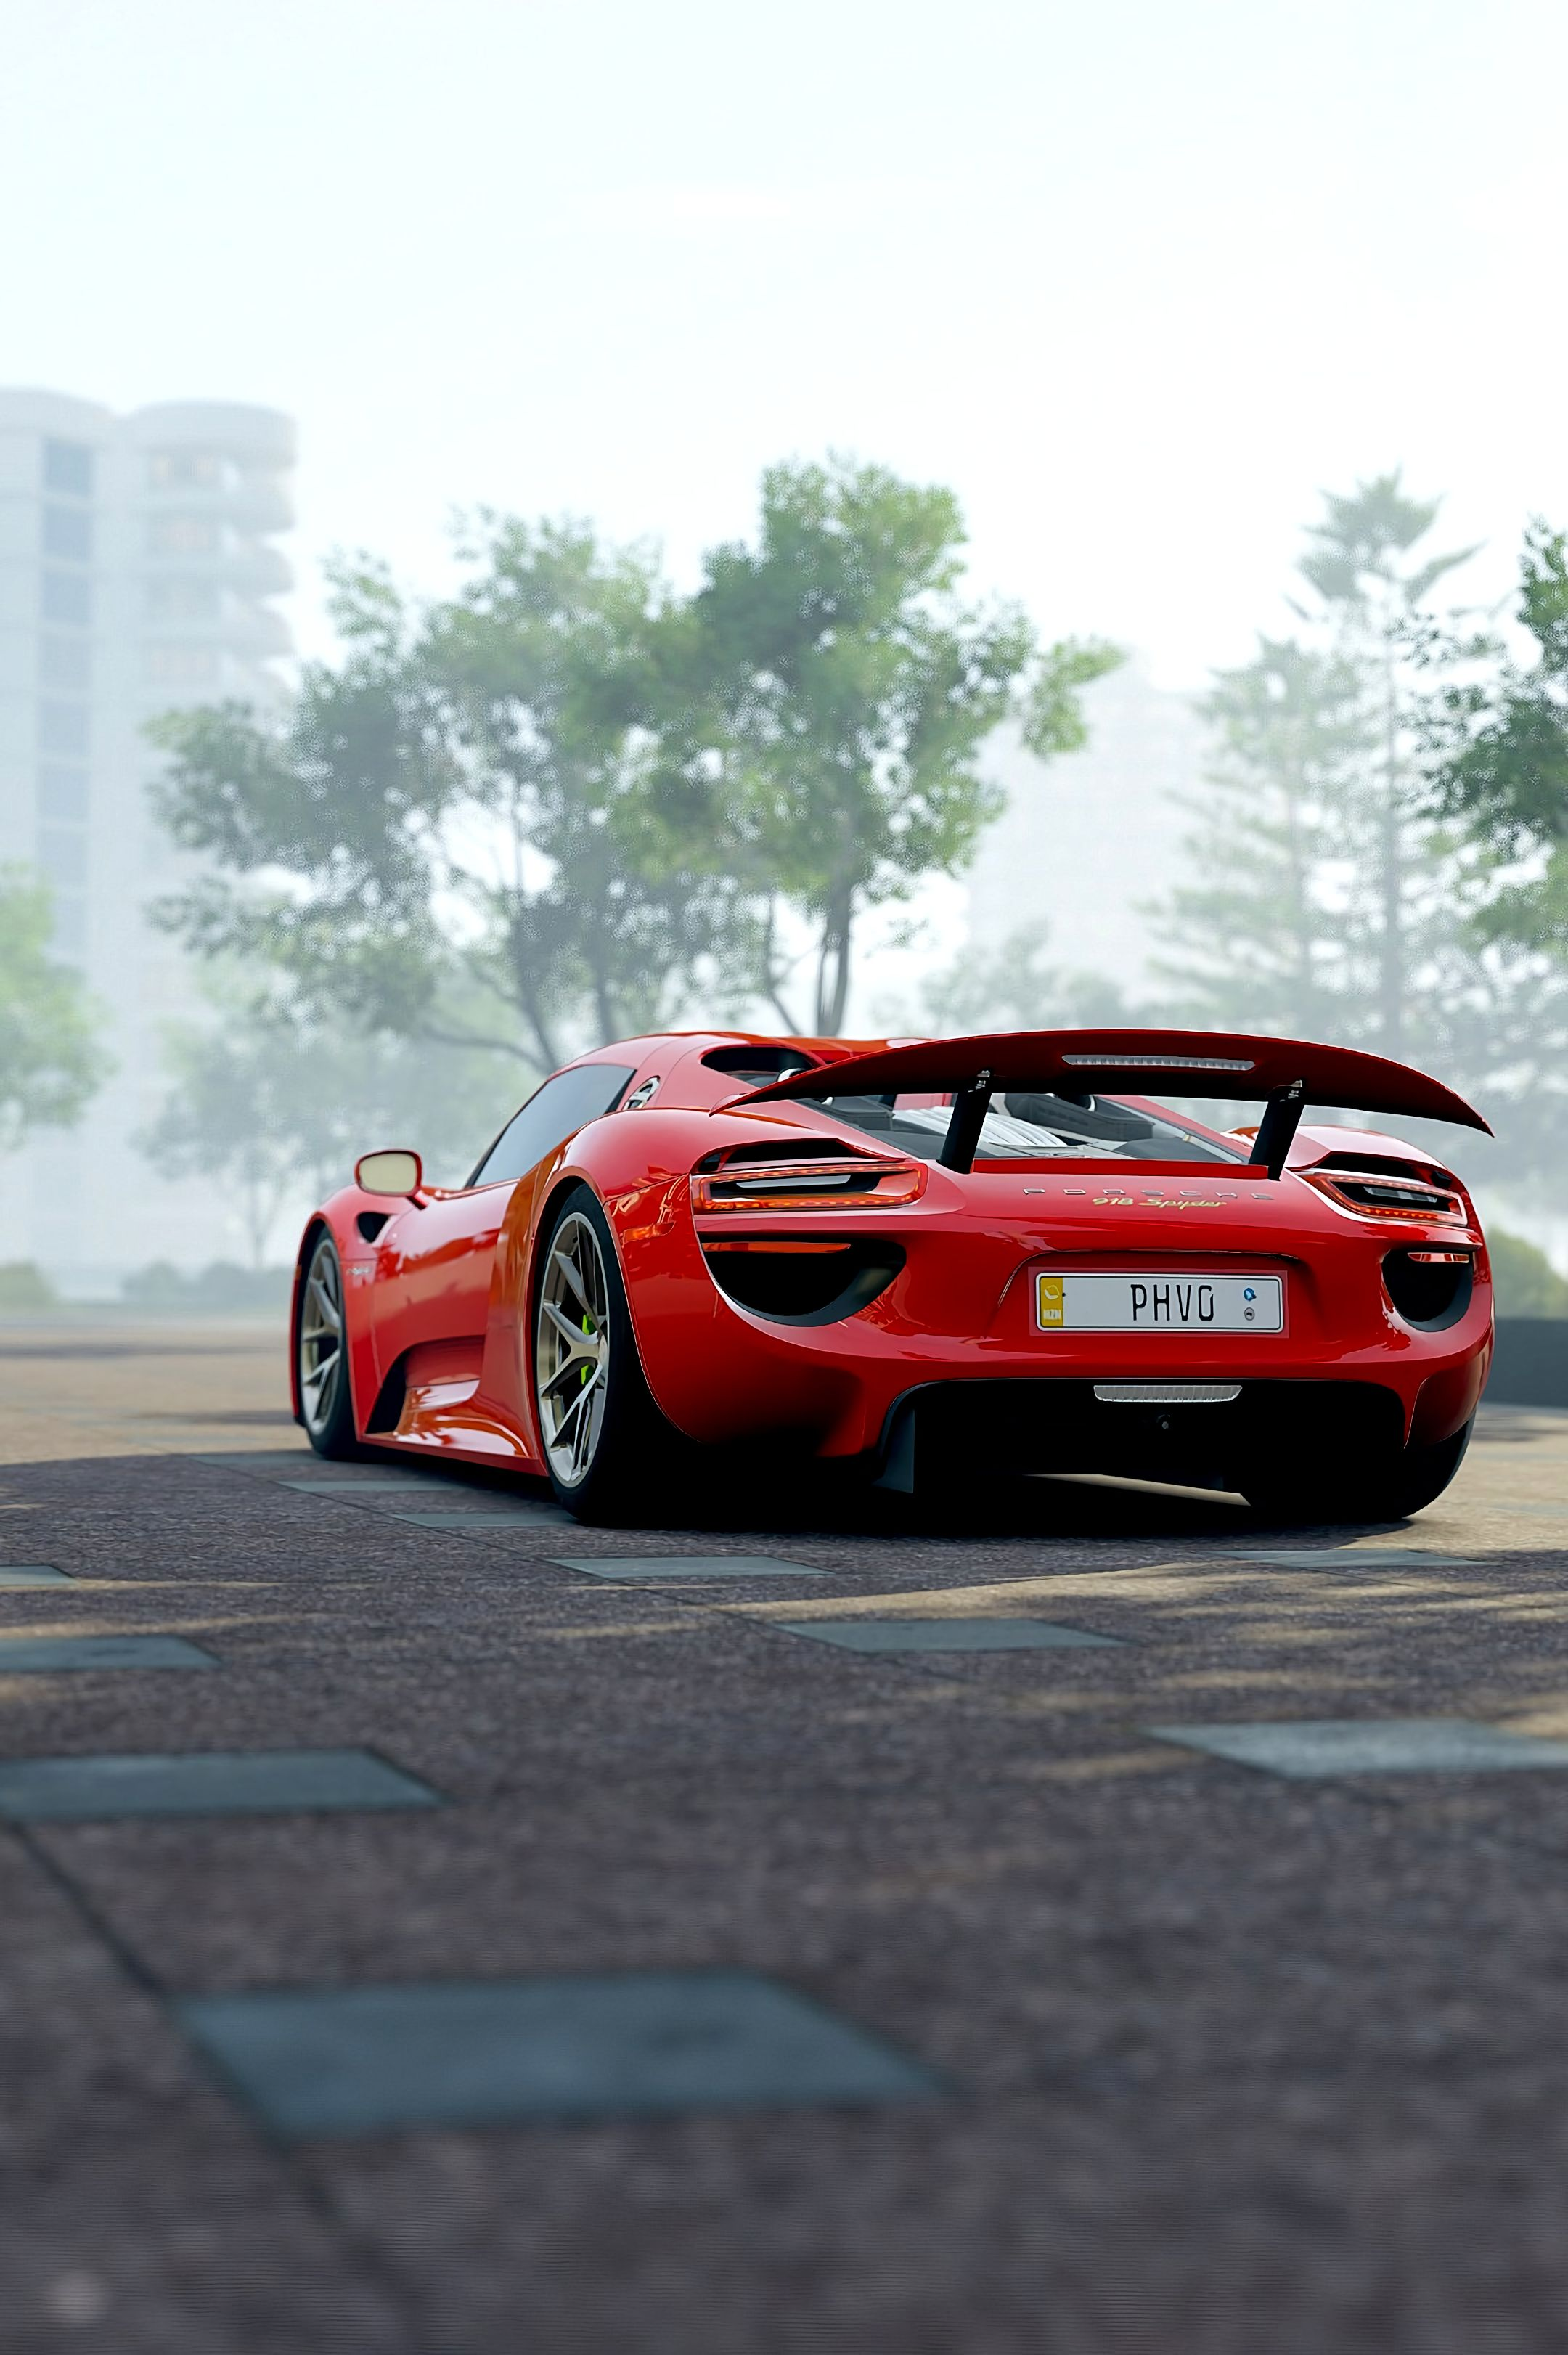 156894 download wallpaper Porsche, Sports, Cars, Sports Car, Side View, Porsche 918 screensavers and pictures for free